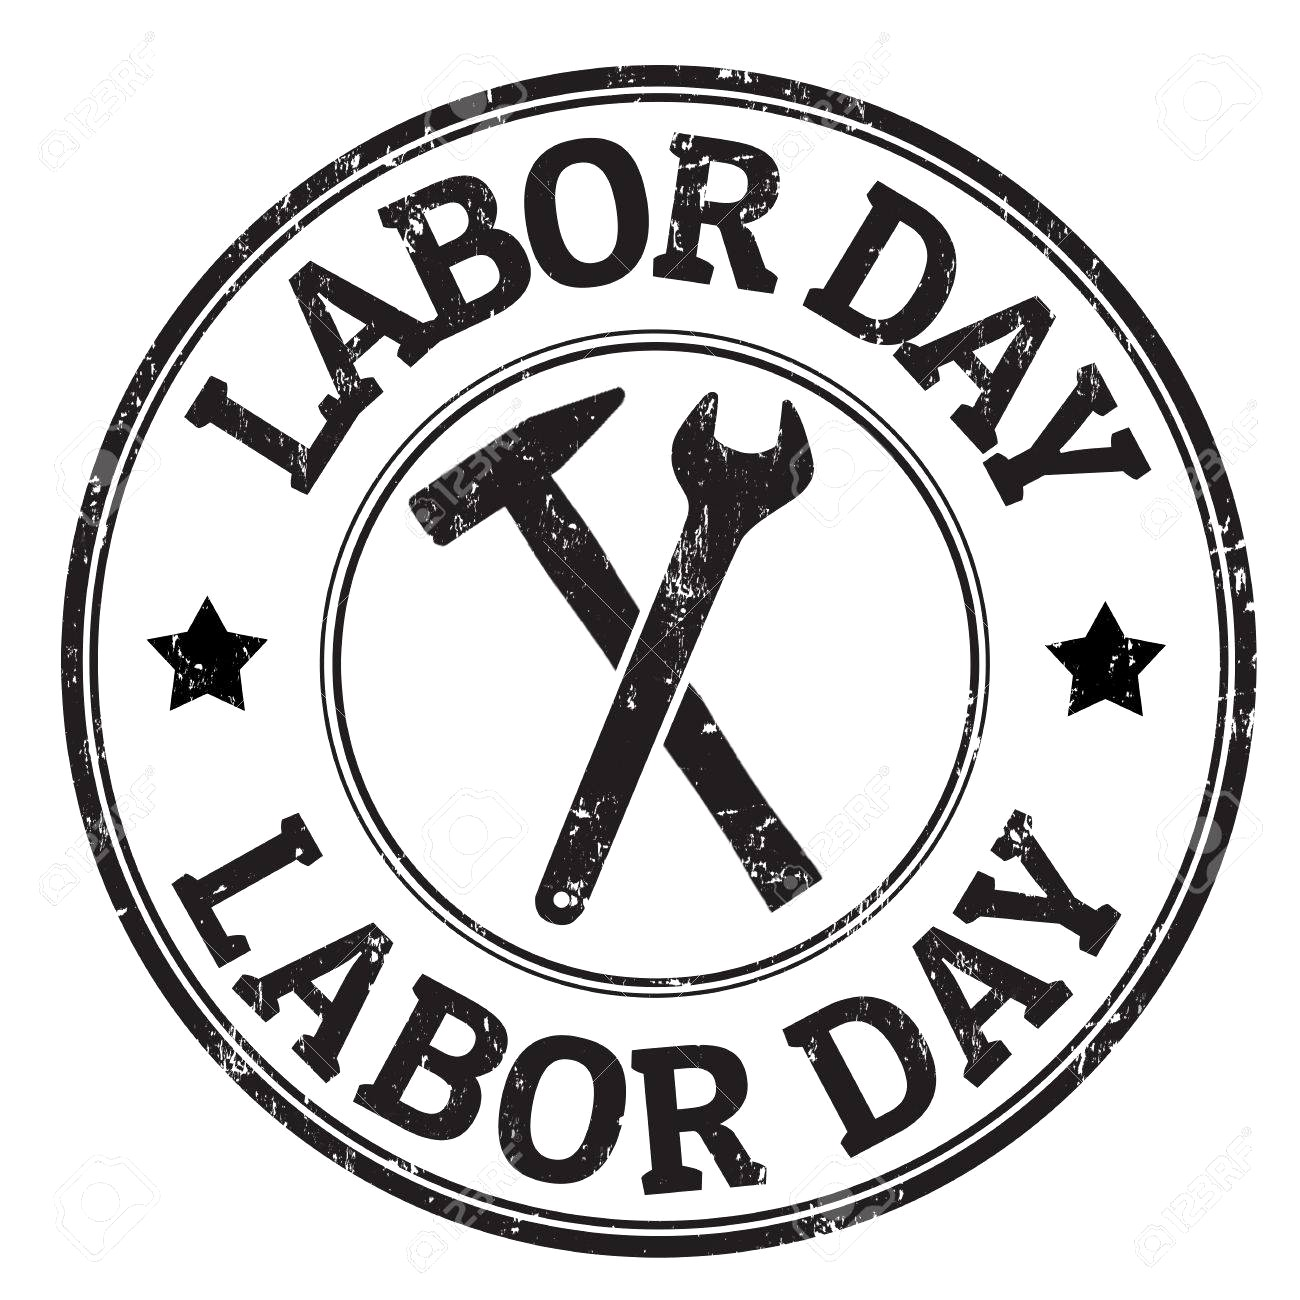 Labor day clipart black and white 6 » Clipart Station.